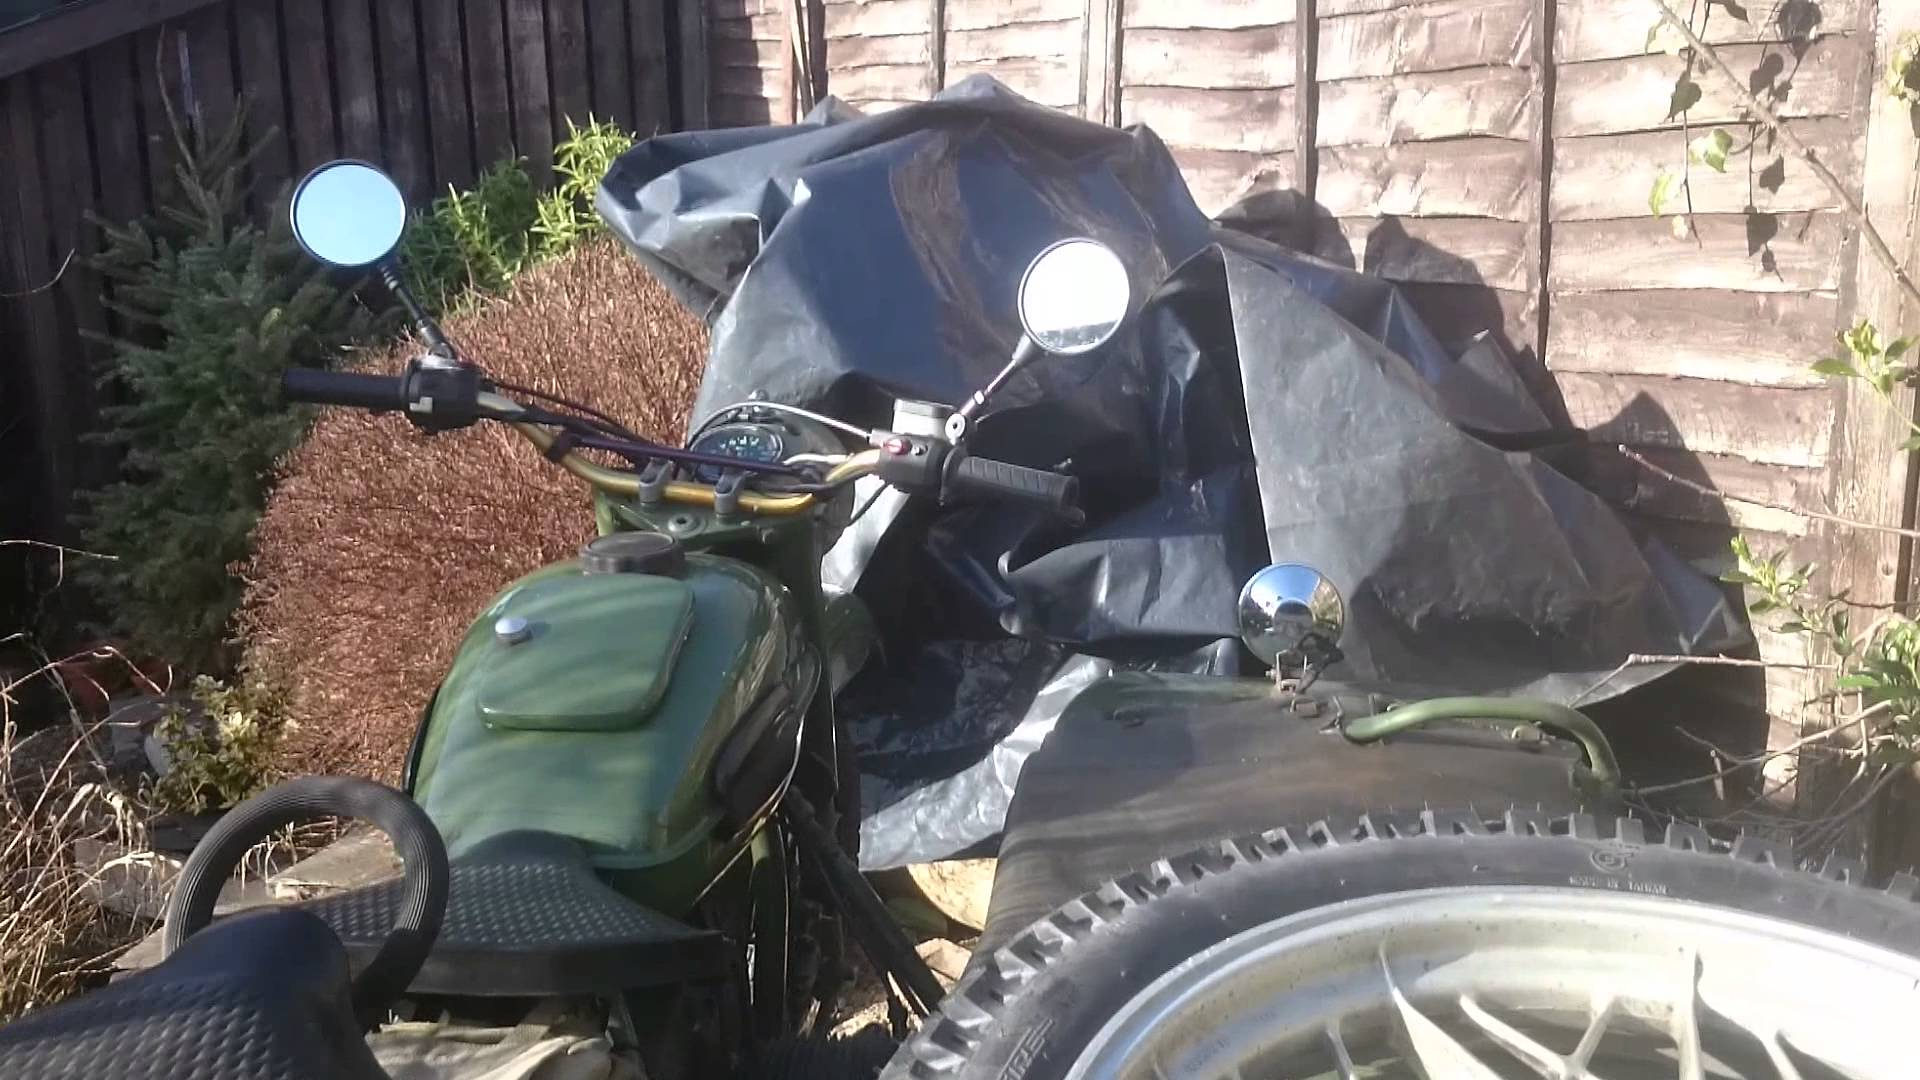 Ural M-63 with sidecar 1972 images #127114